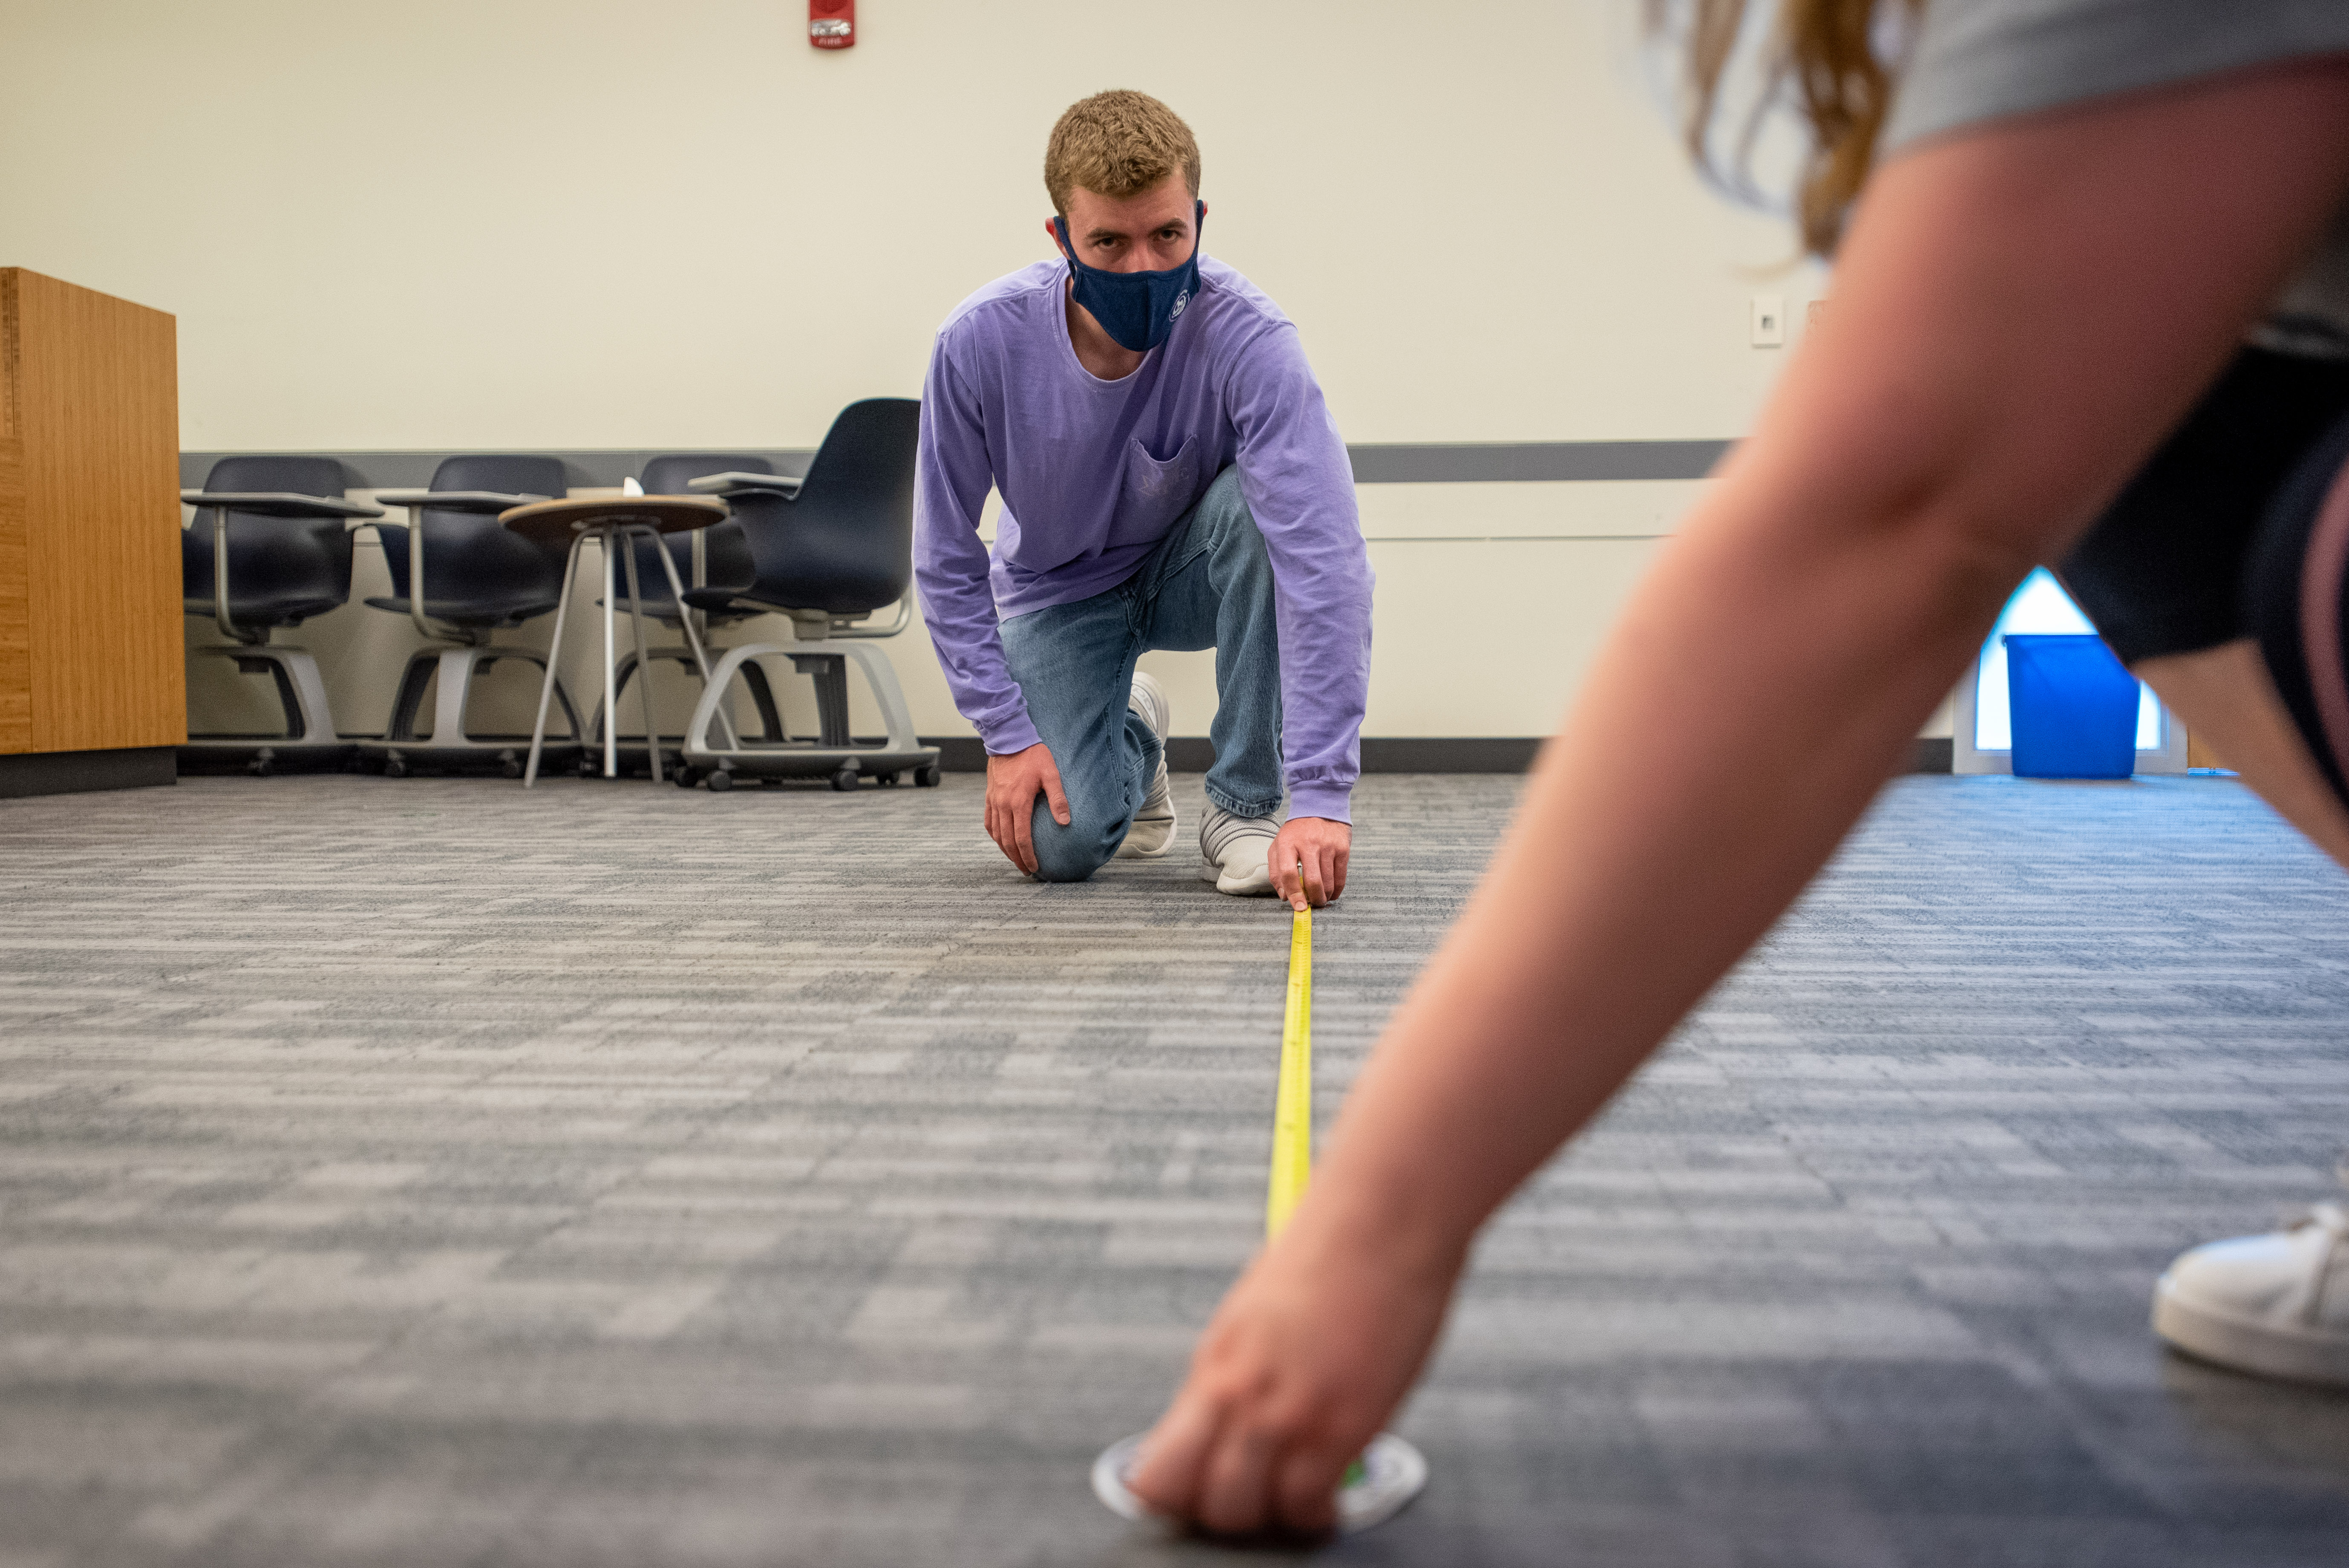 Two people in masks use a tape measure in a classroom to mark off space needed between desks.